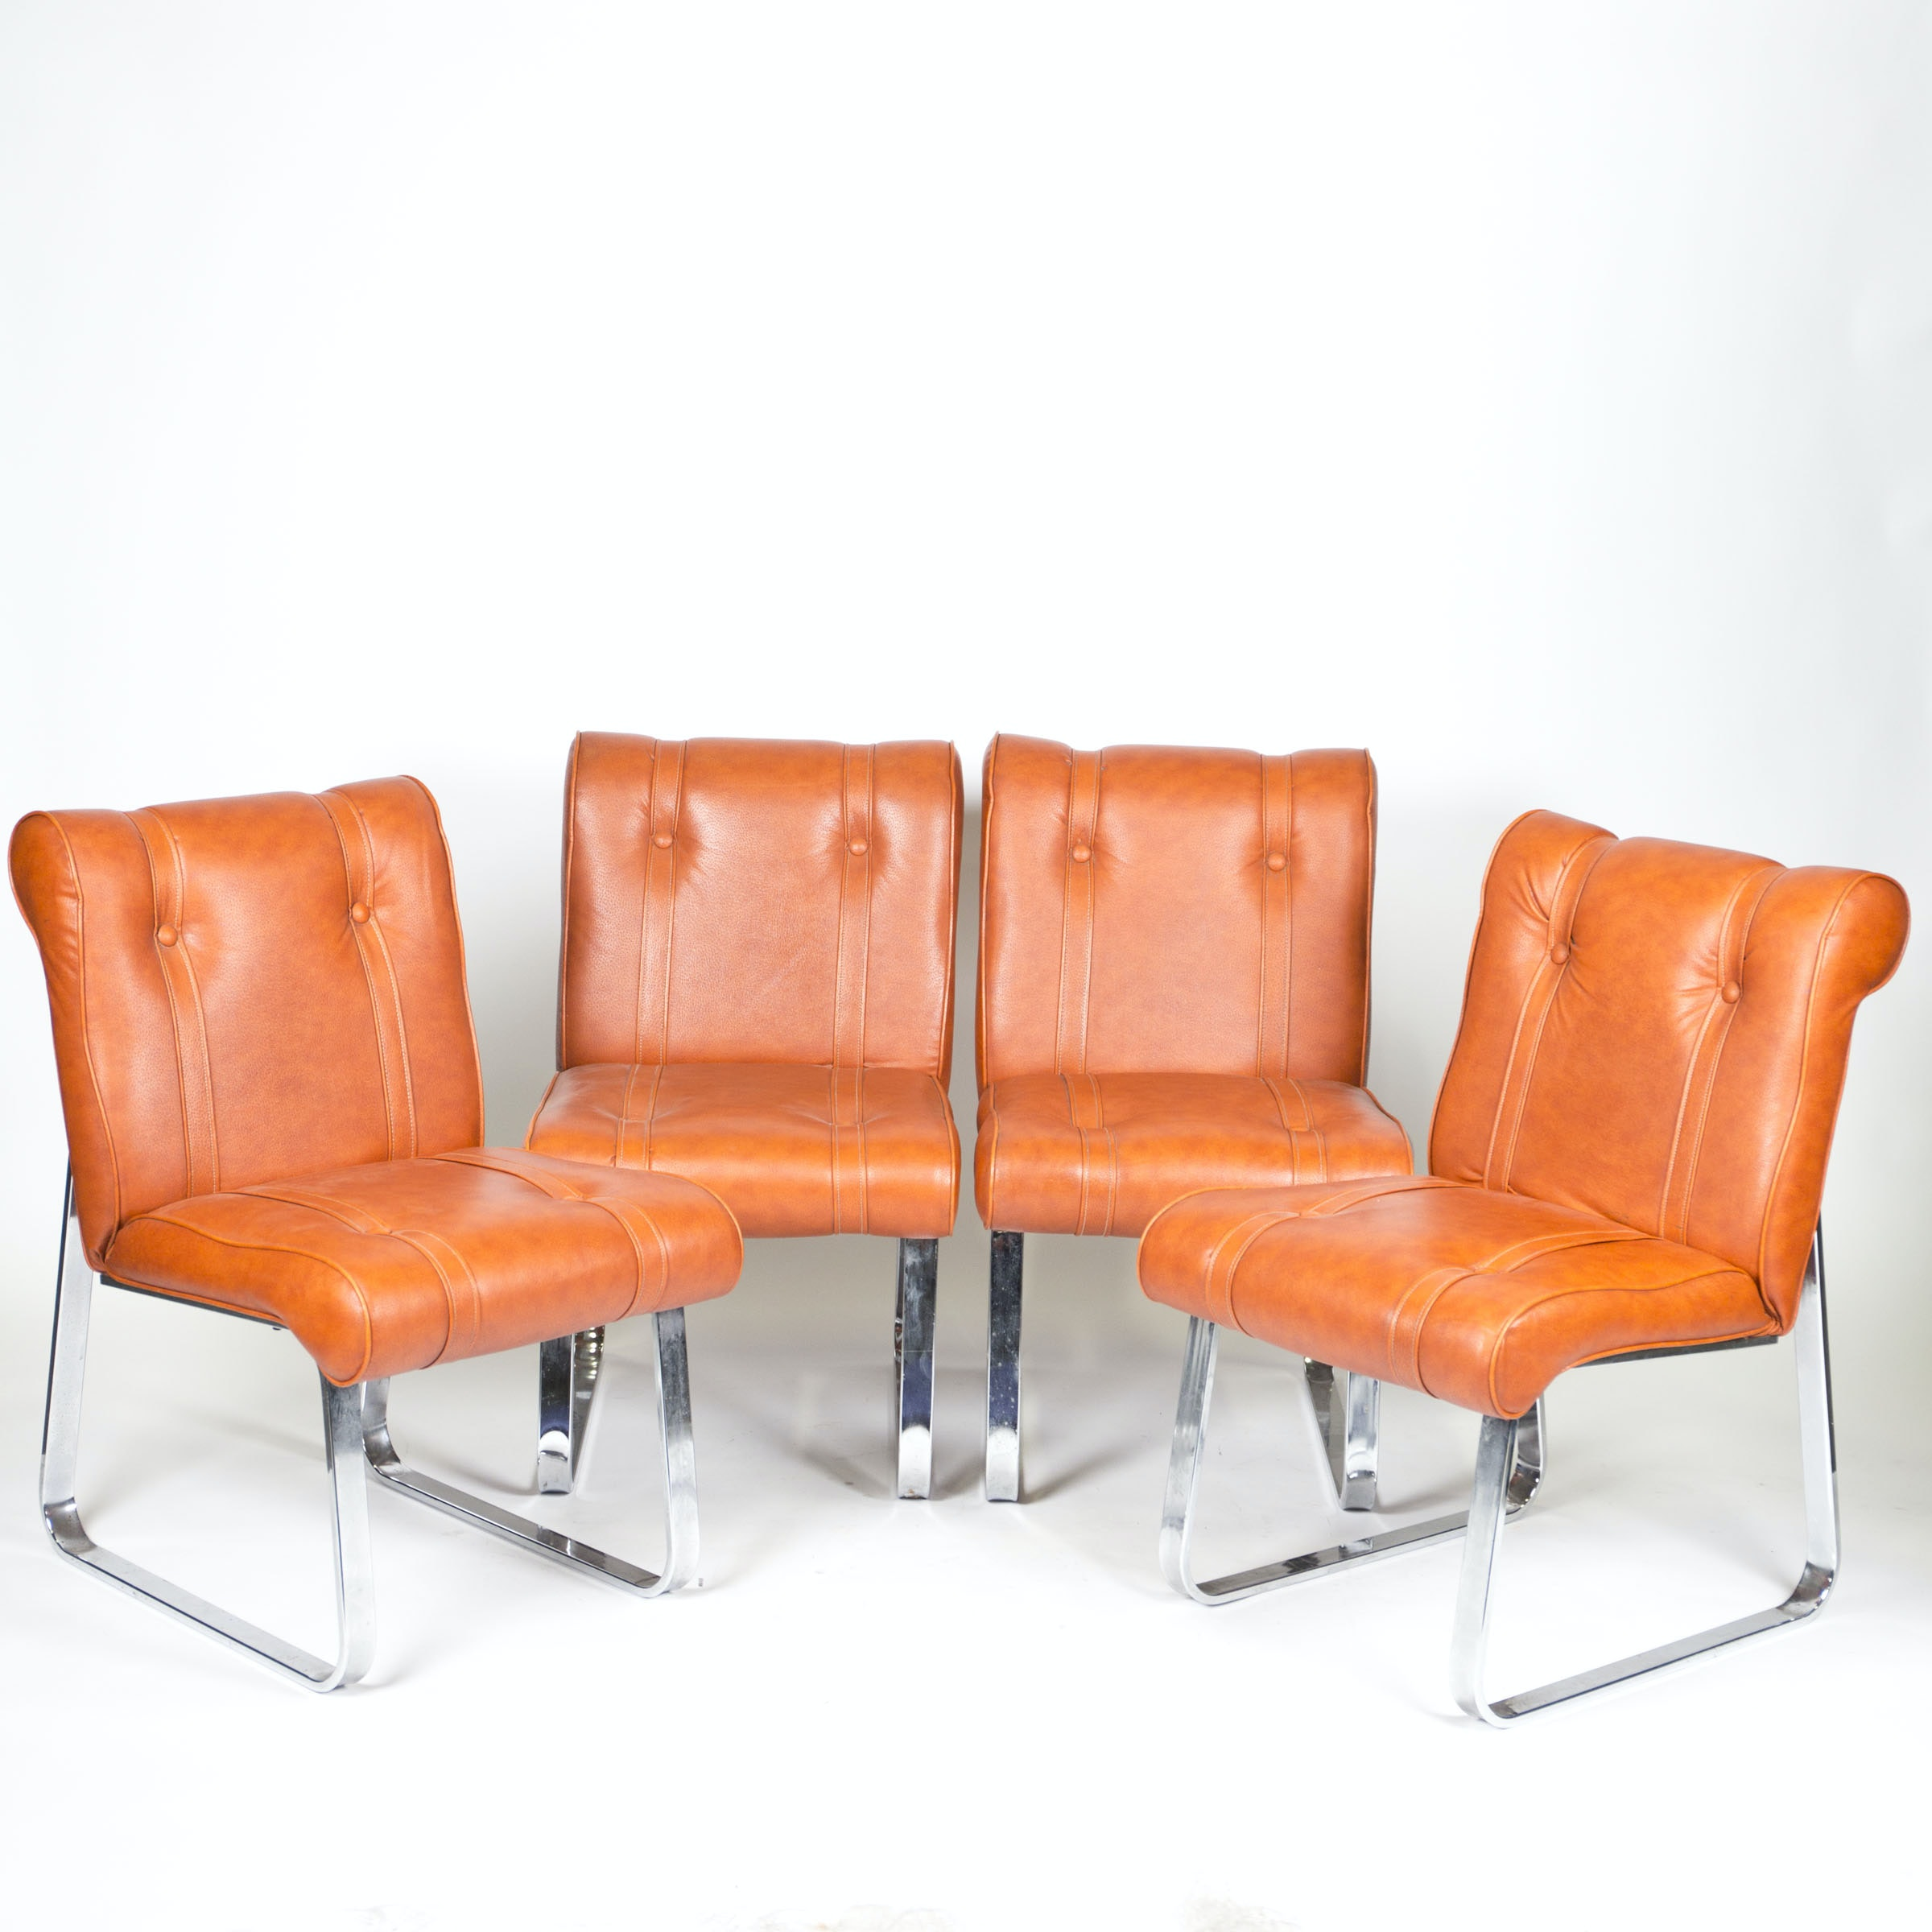 Mid Century Modern Vinyl And Chrome Chairs By Douglas Furniture Ebth